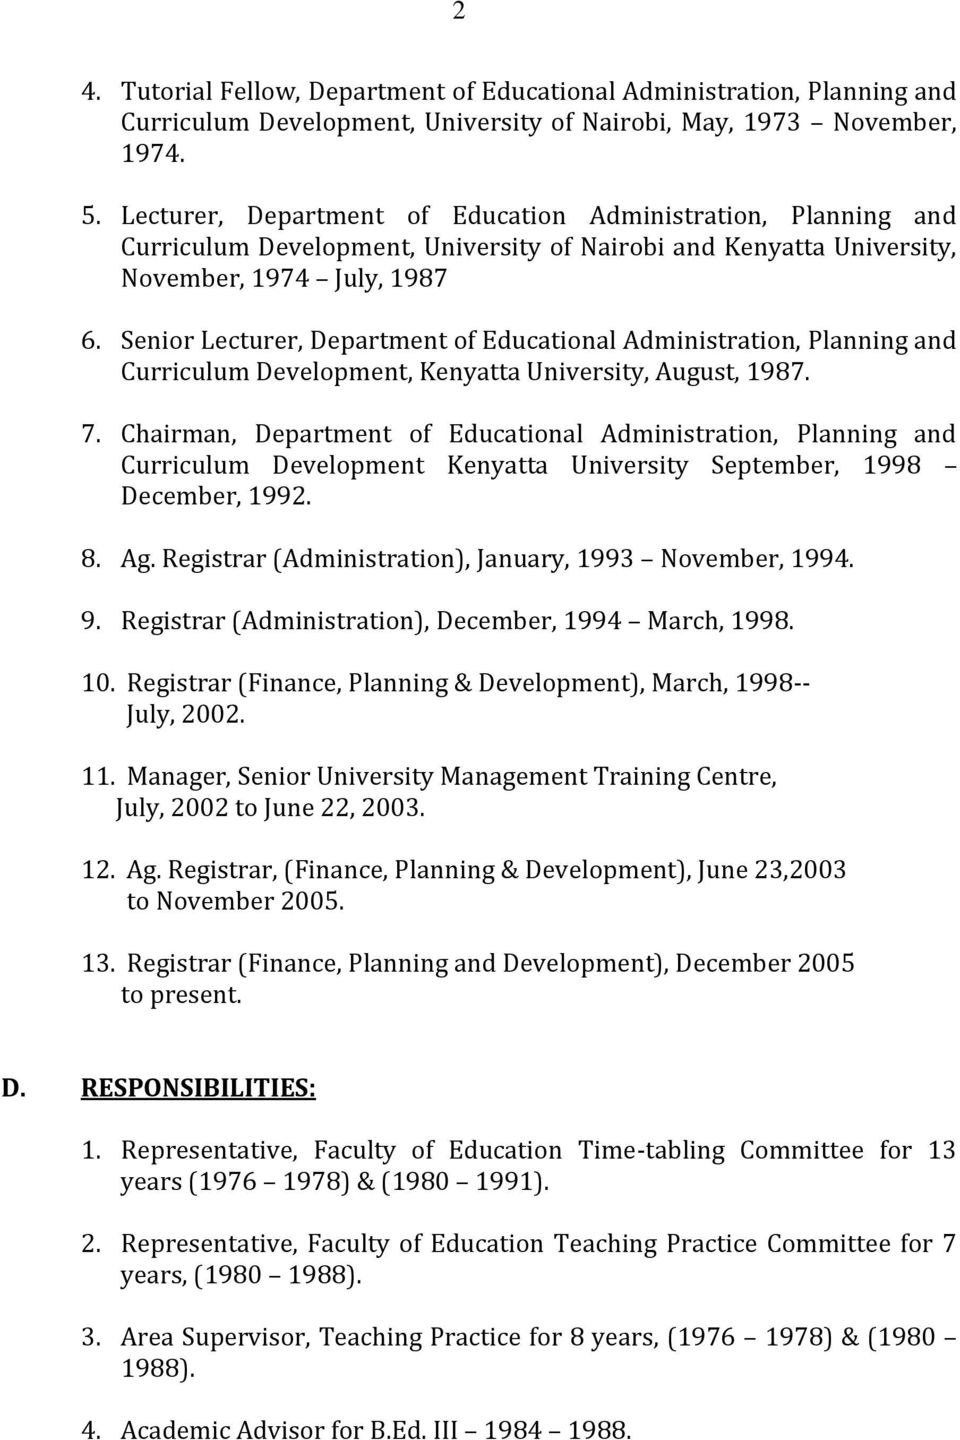 Senior Lecturer, Department of Educational Administration, Planning and Curriculum Development, Kenyatta University, August, 1987. 7.